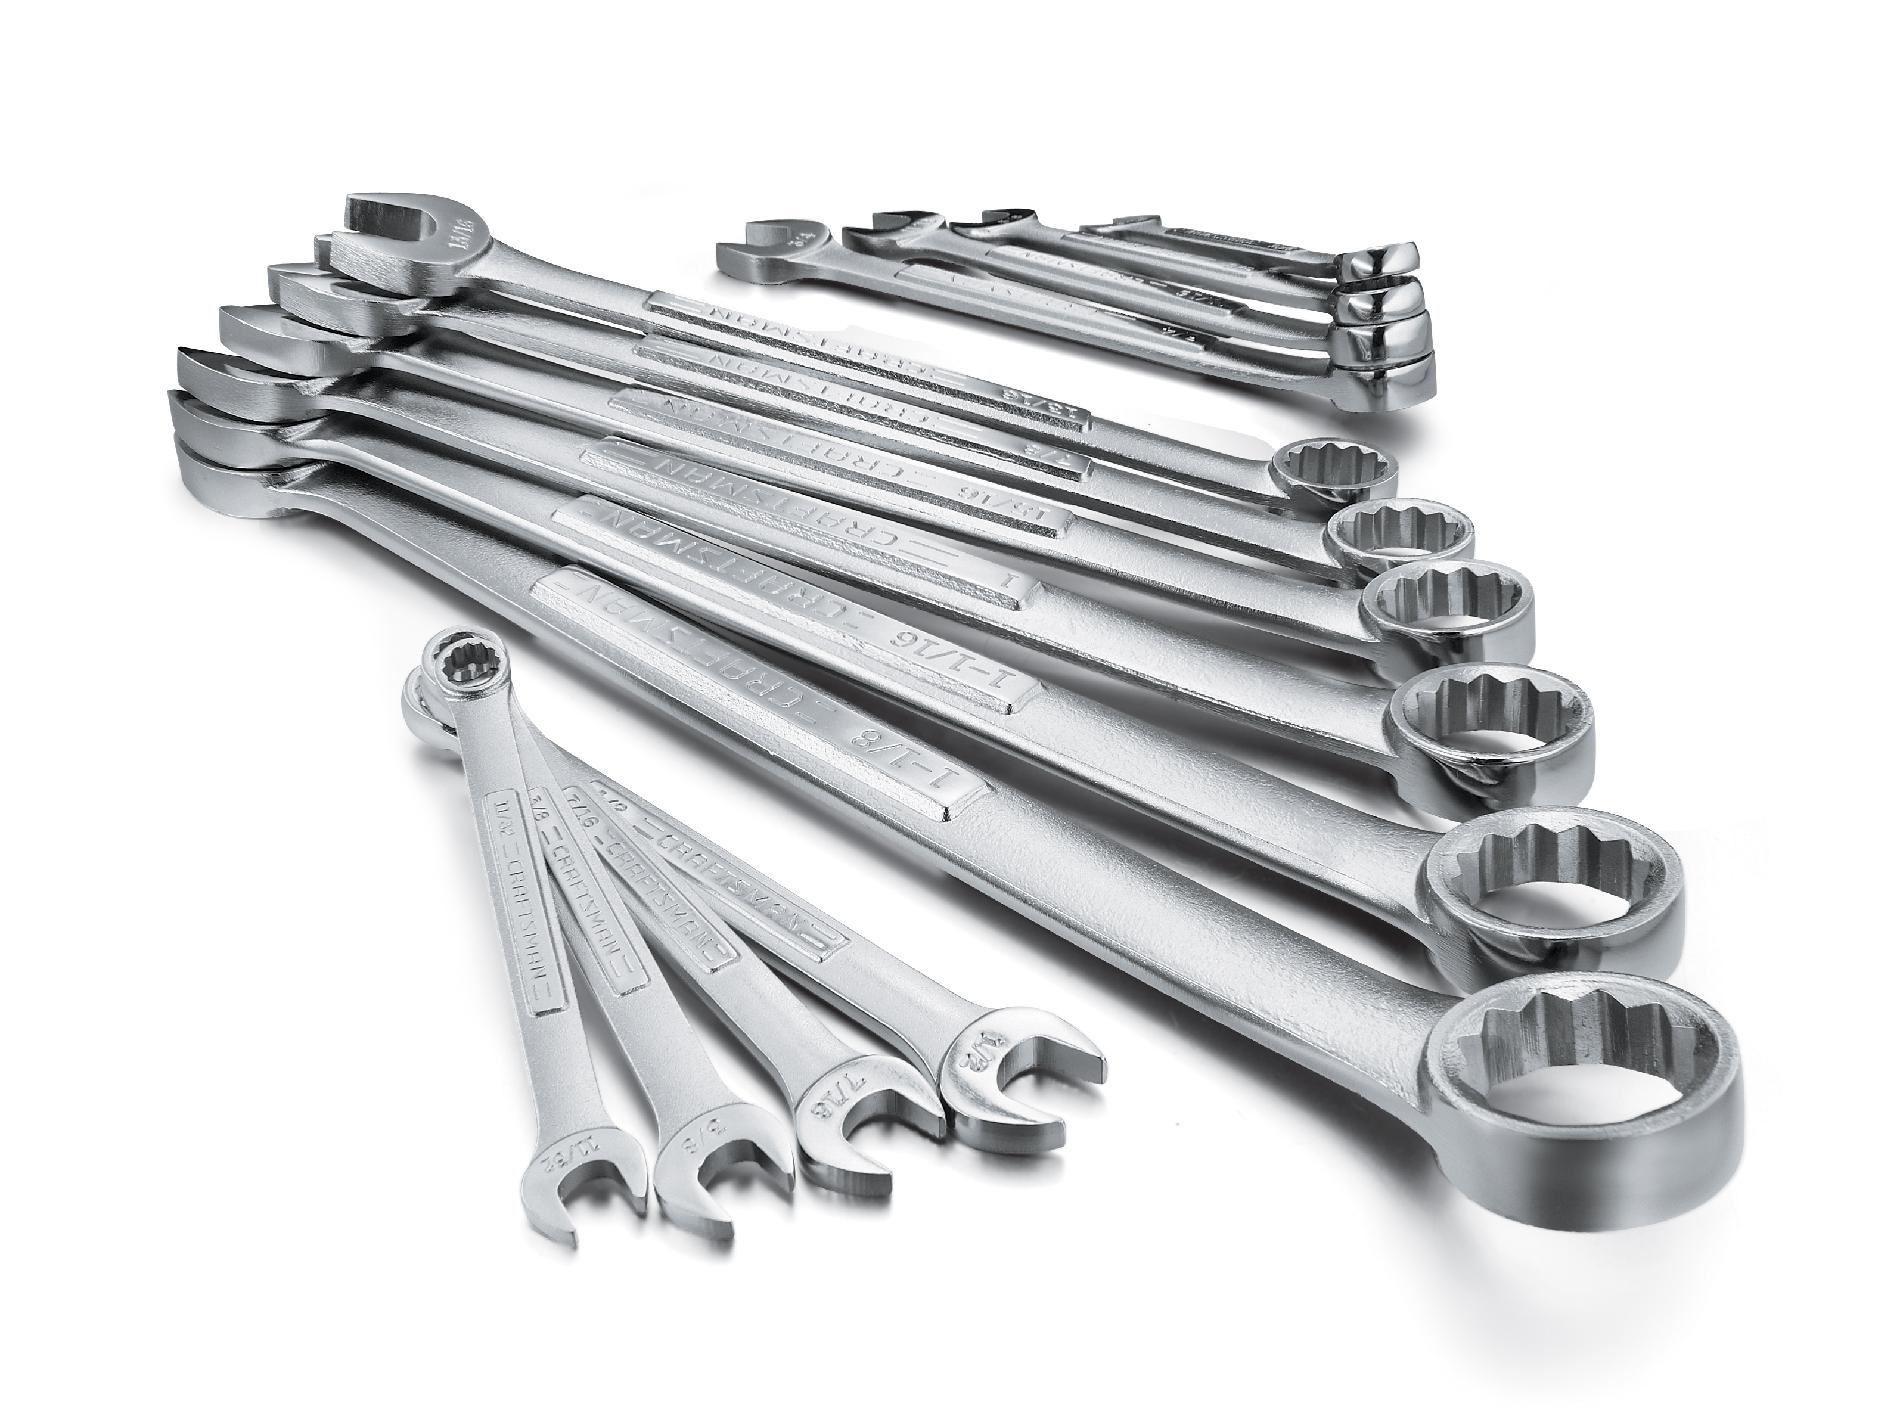 Craftsman 14 pc. Standard 12 pt. Combination Wrench Set